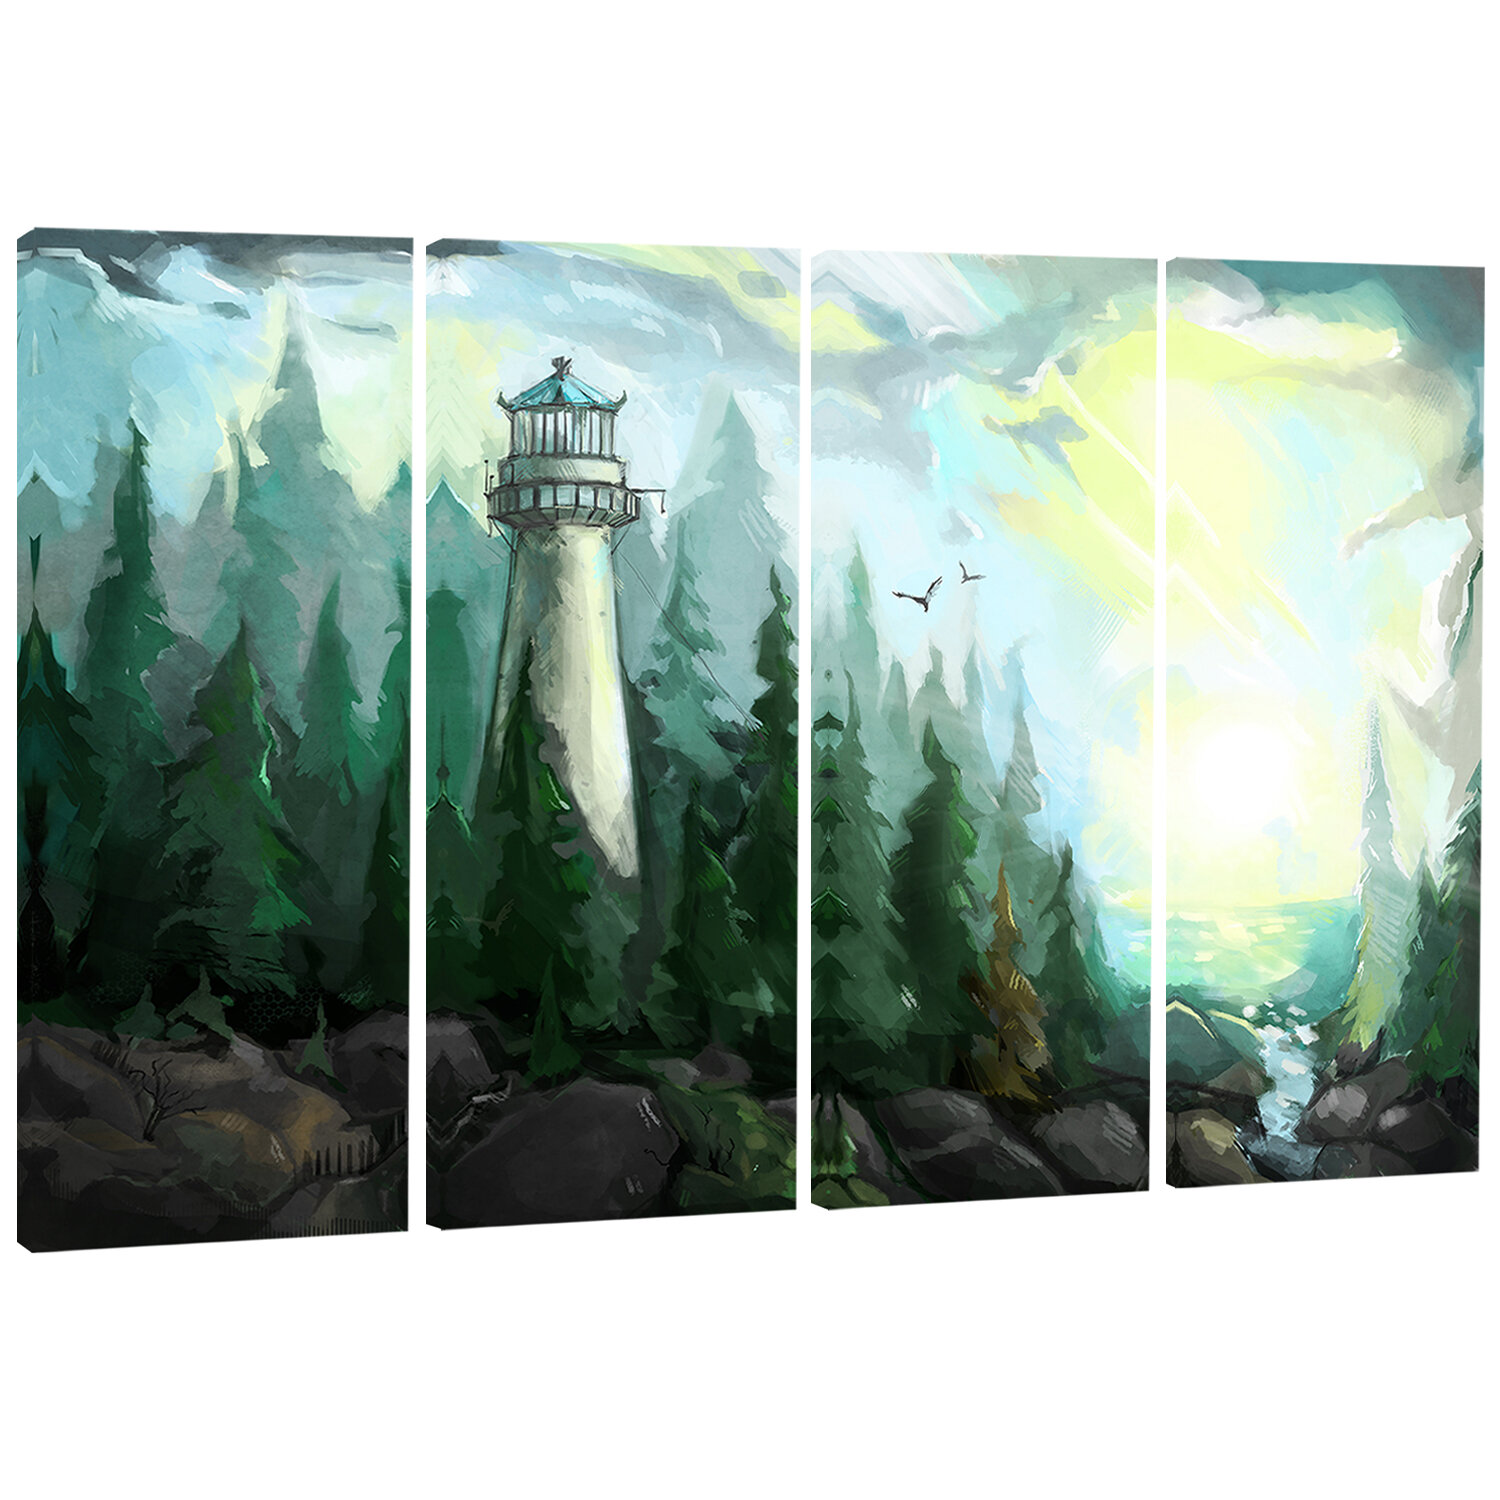 Designart Landscape With River And Trees Modern 4 Piece Painting Print On Wrapped Canvas Set Wayfair